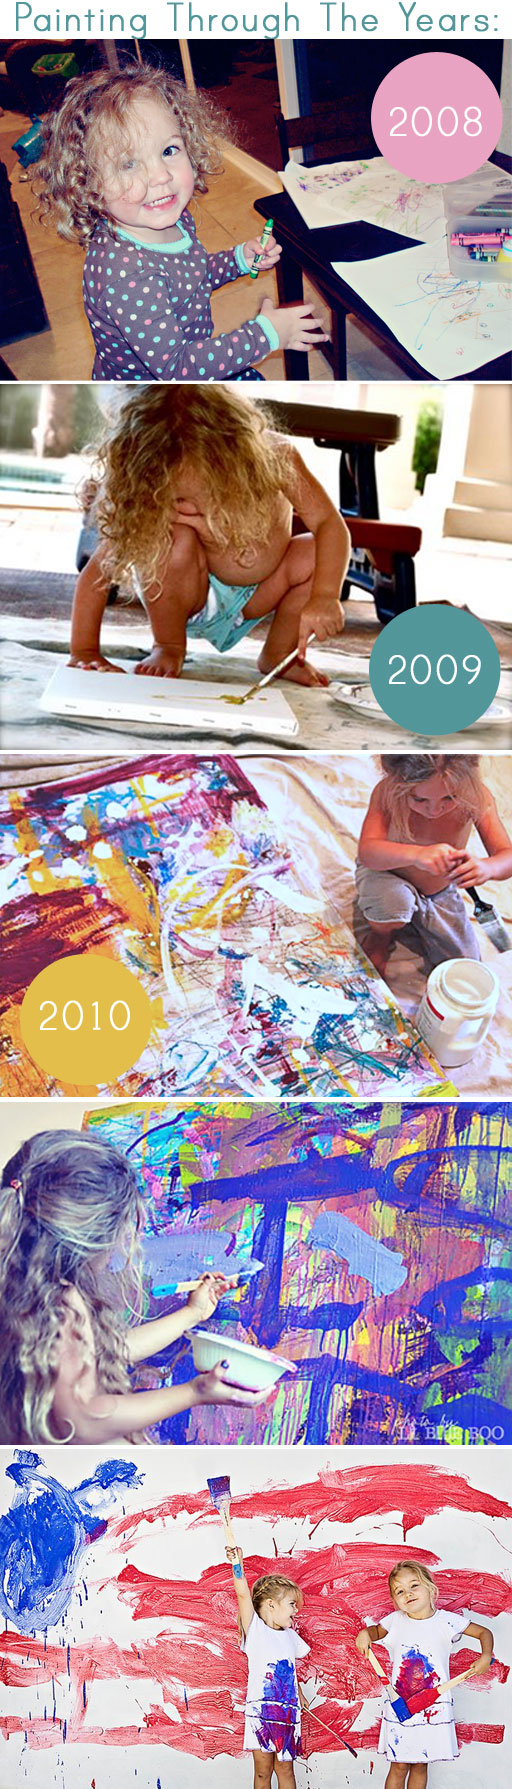 Painting by Boo Hackshaw over the years via lilblueboo.com